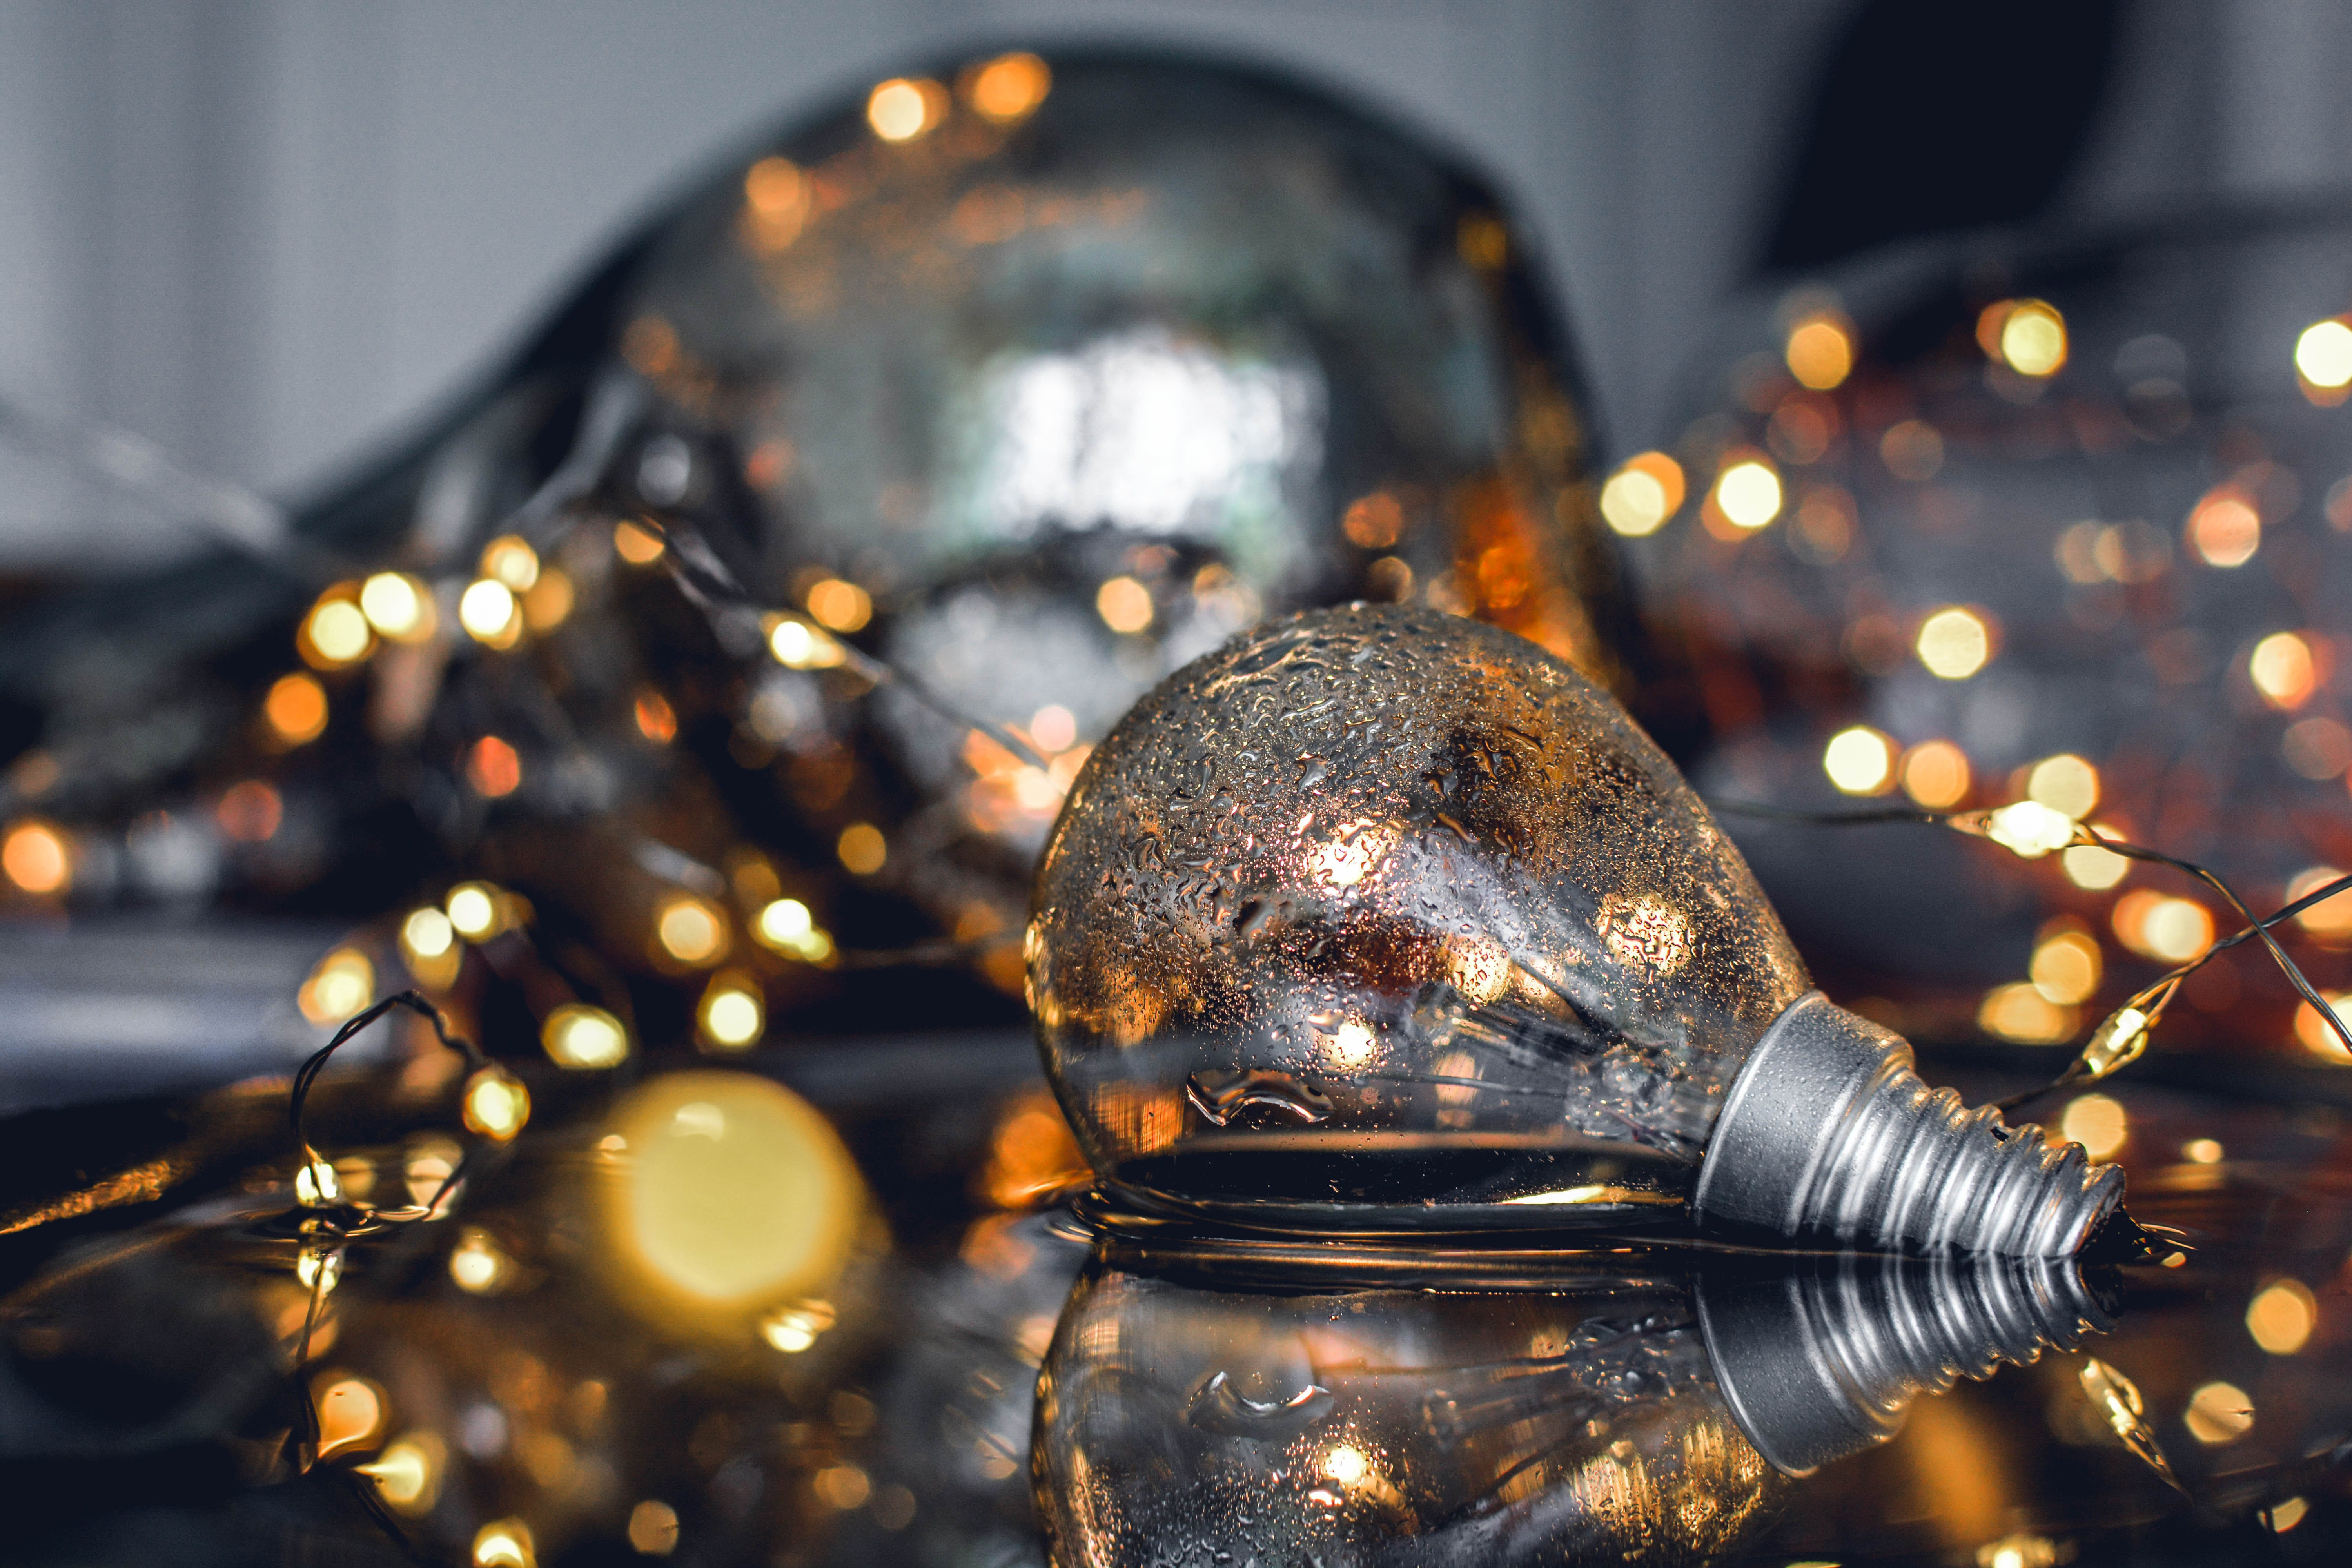 Close-Up Photography of Bulb on Water